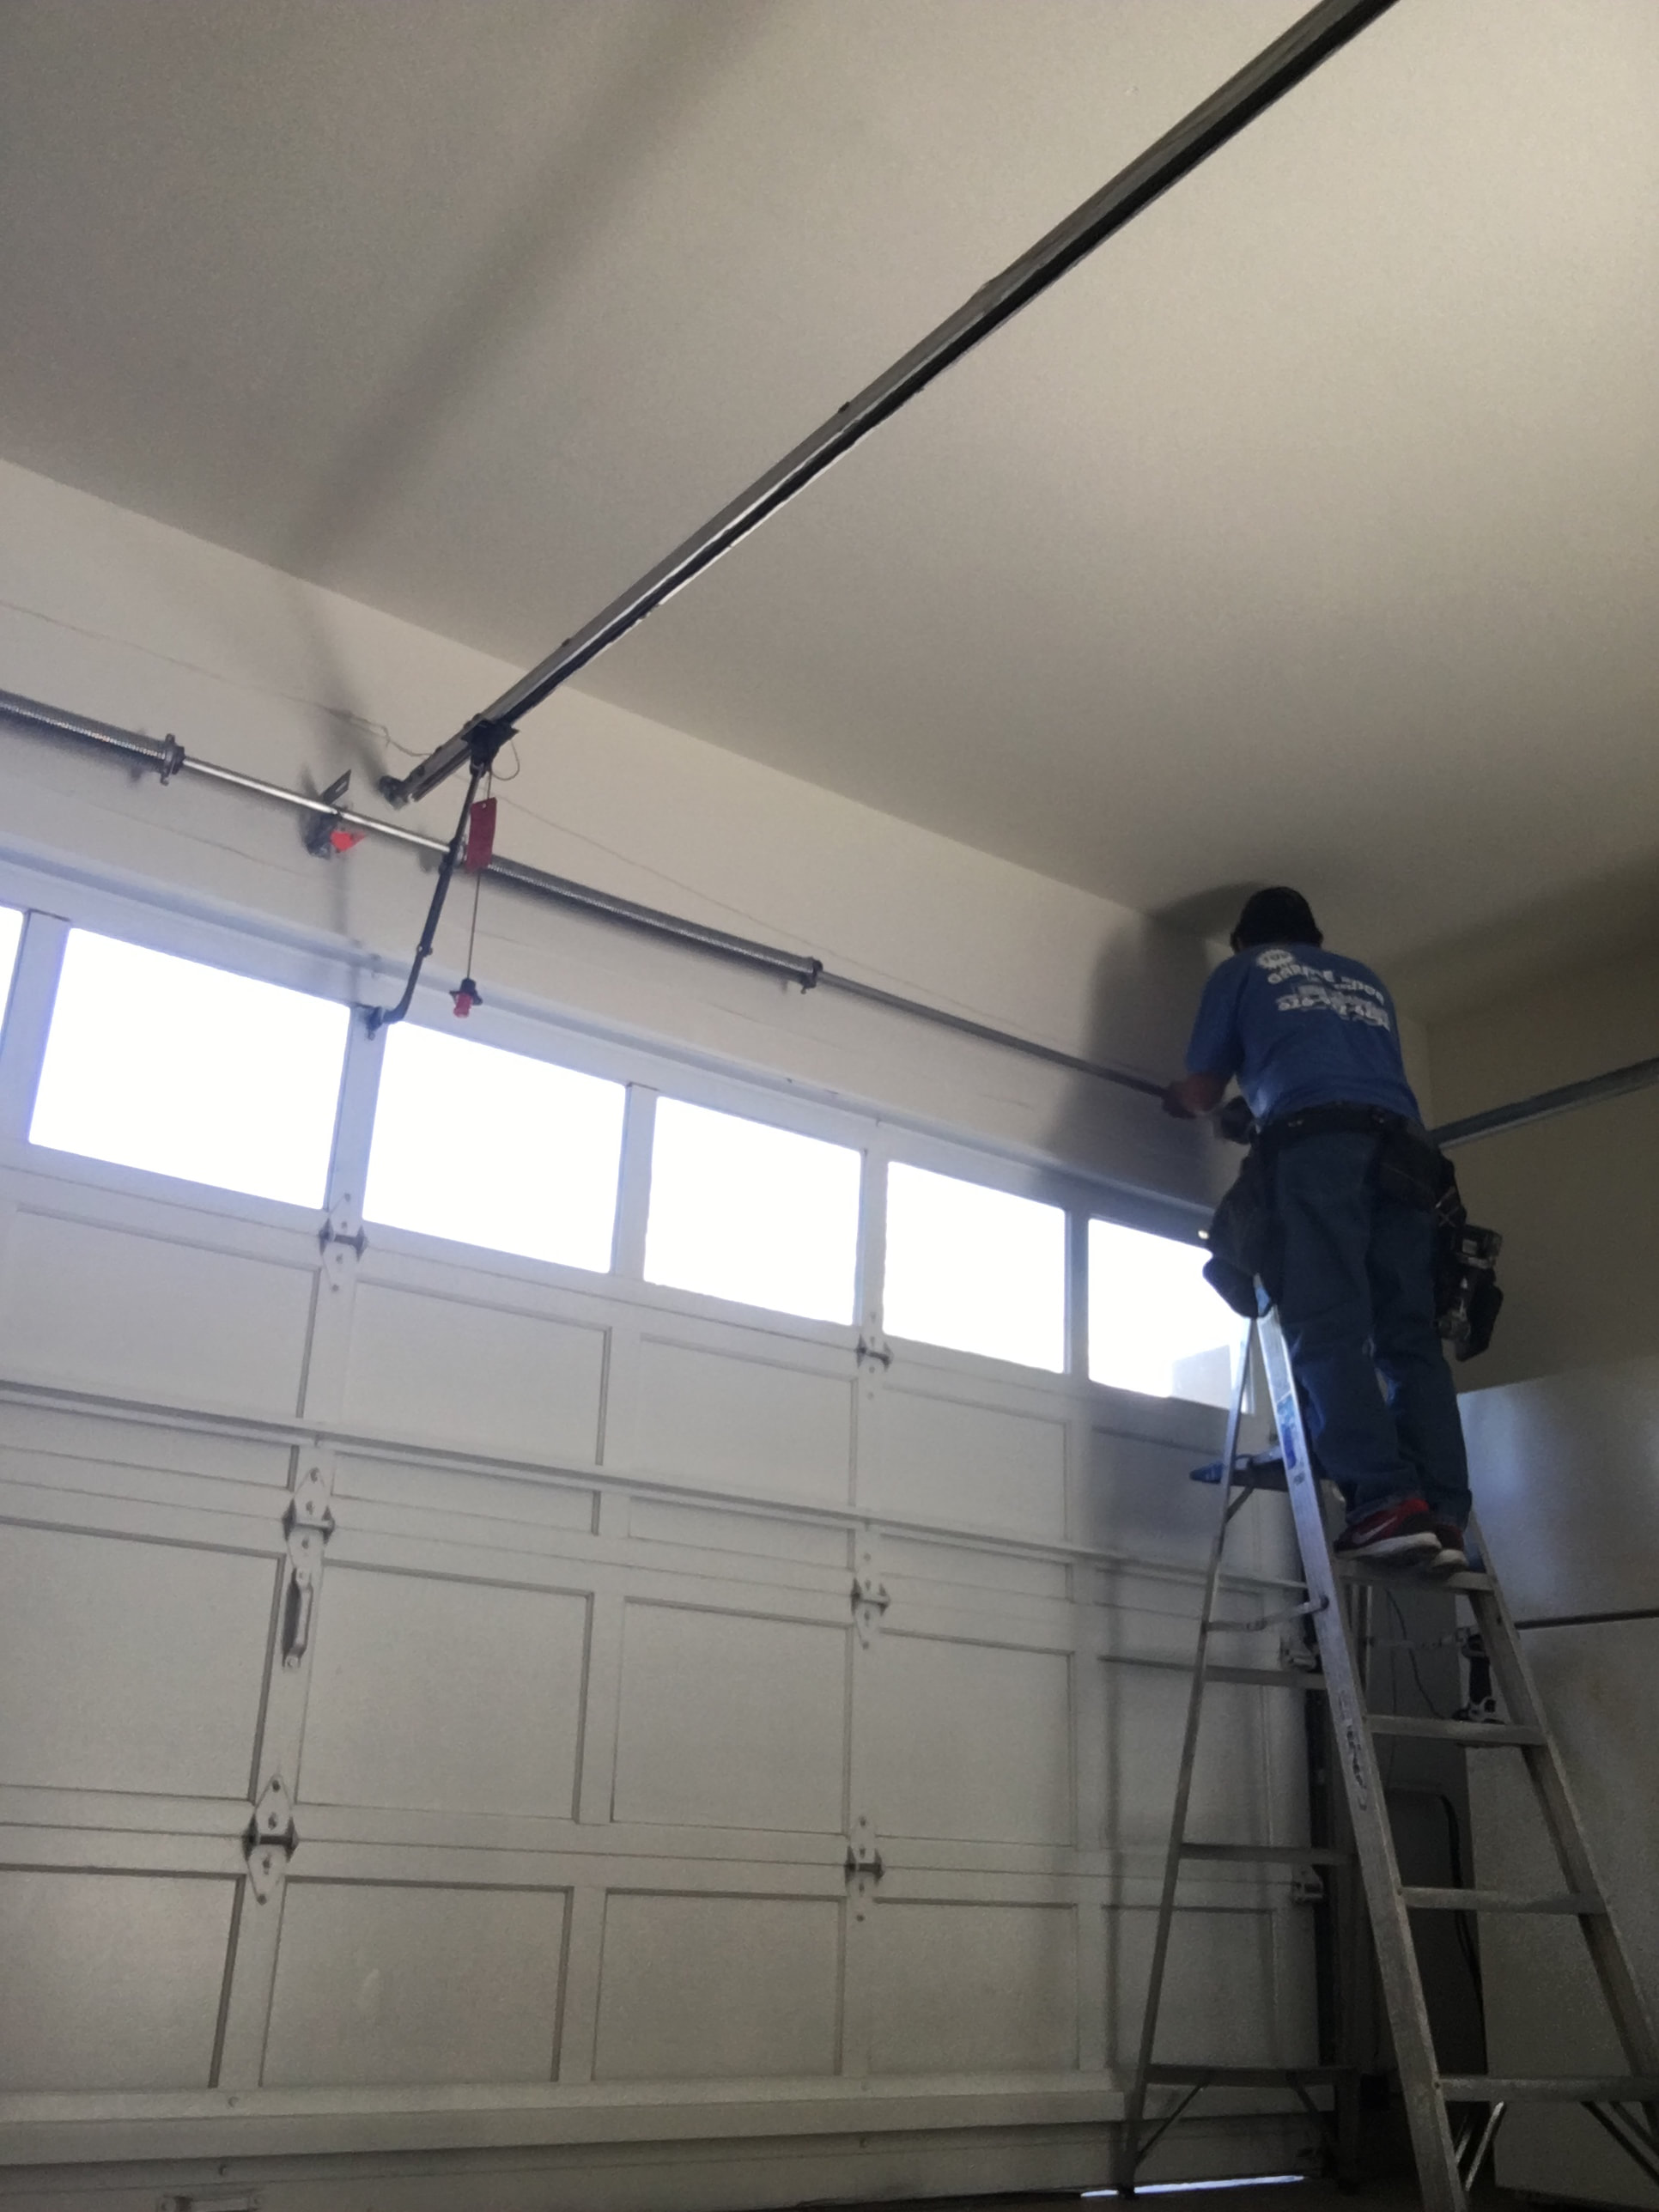 Torsion Springs Replacement For Wooden Sectional Door